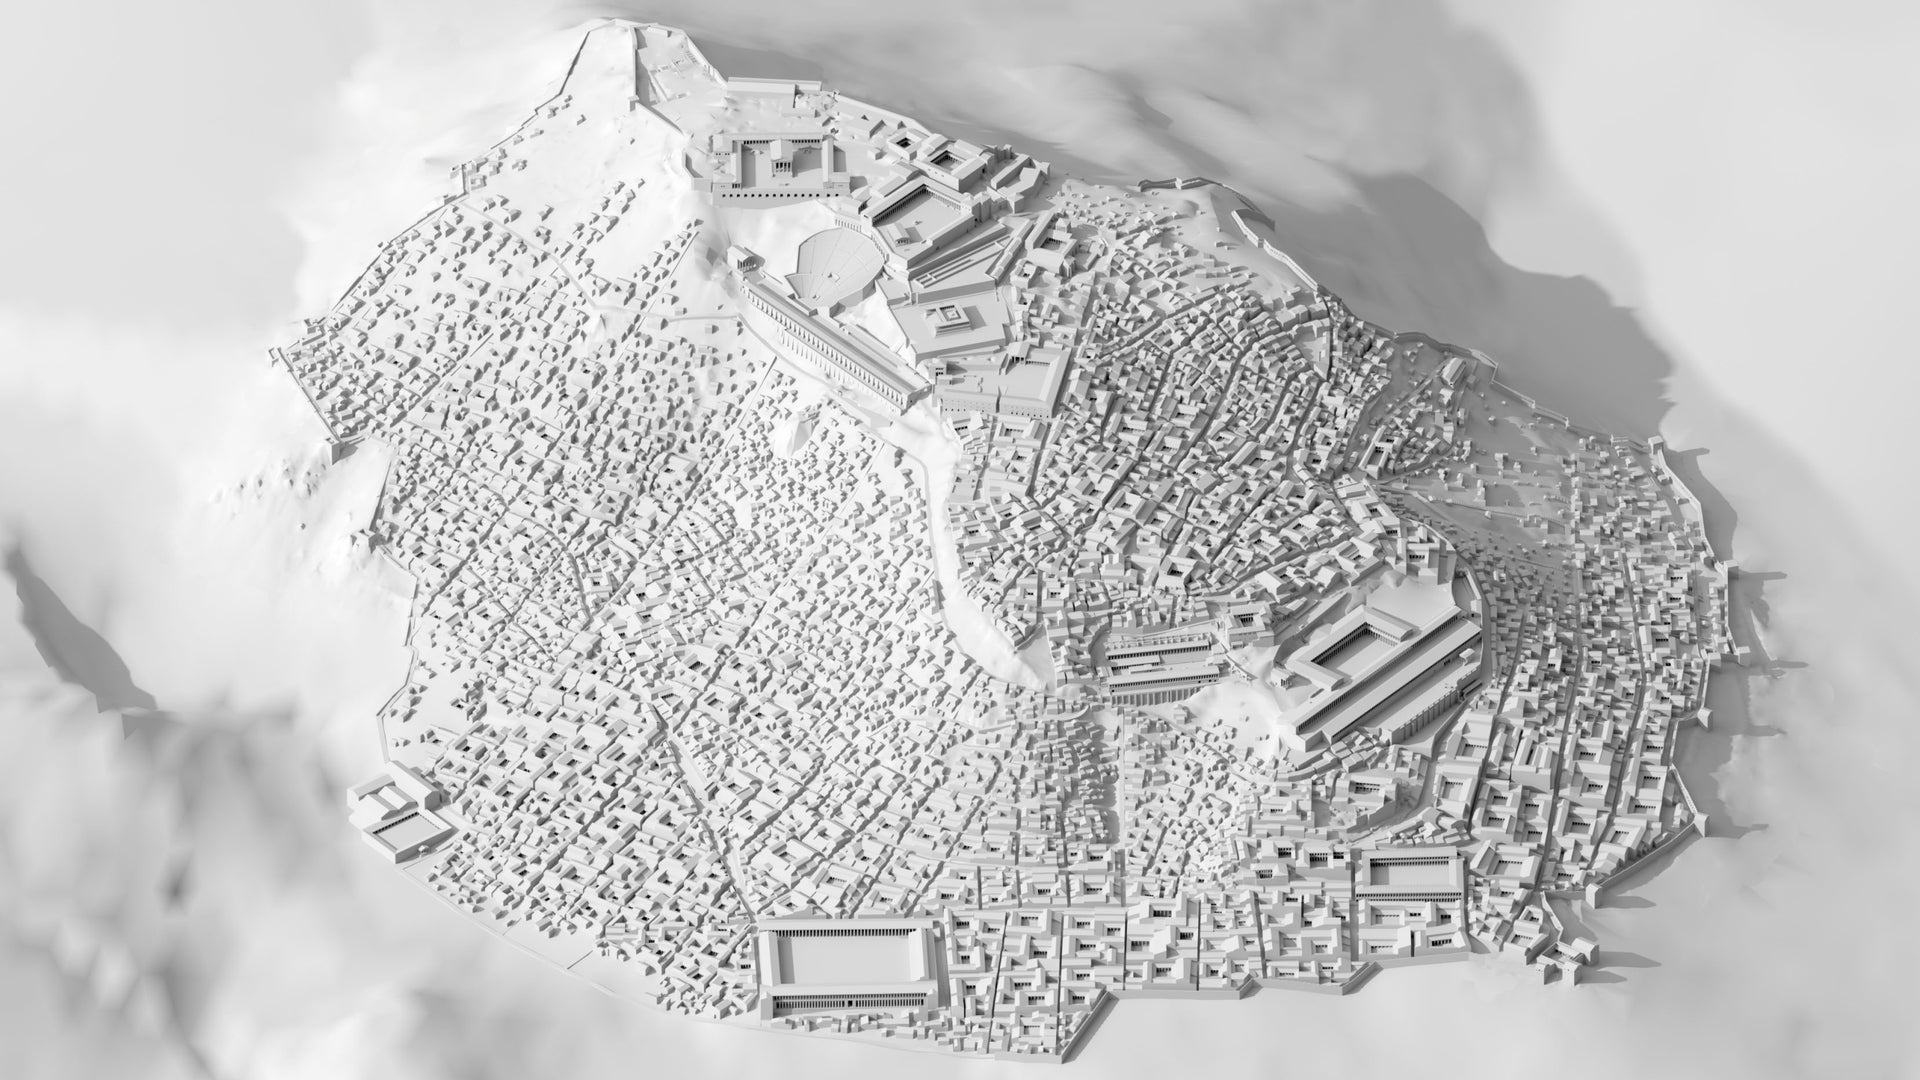 A 3-D reconstruction of ancient Pergamon, showing the monumental construction on high and the sprawling city below.